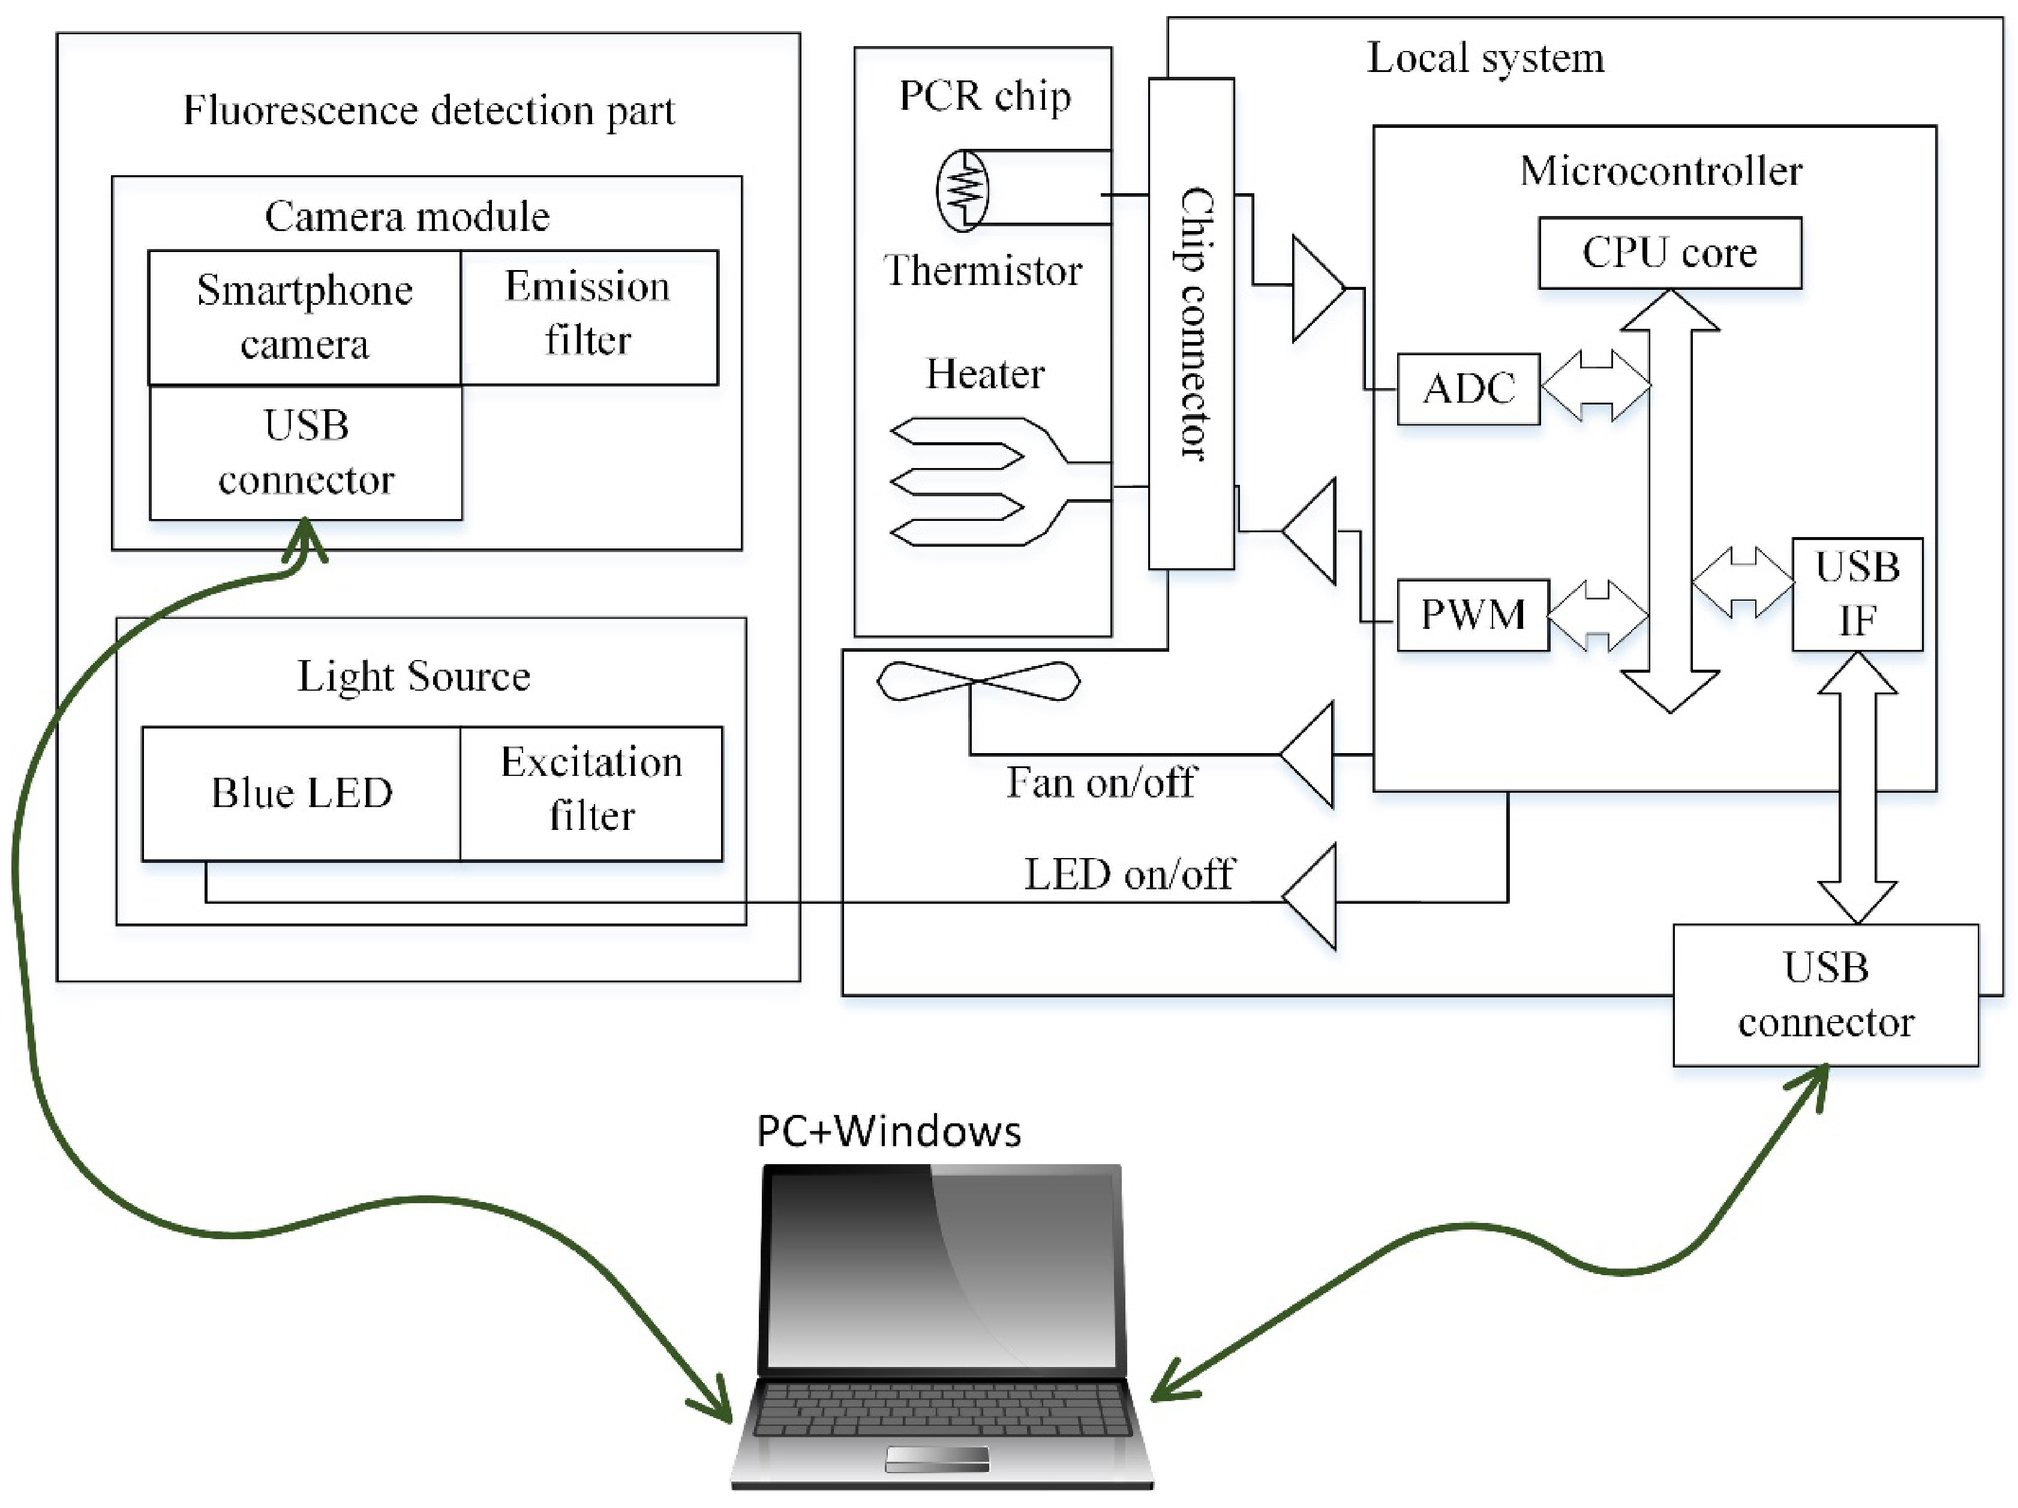 Fluorescence detection using smartphone camera for PCR chips